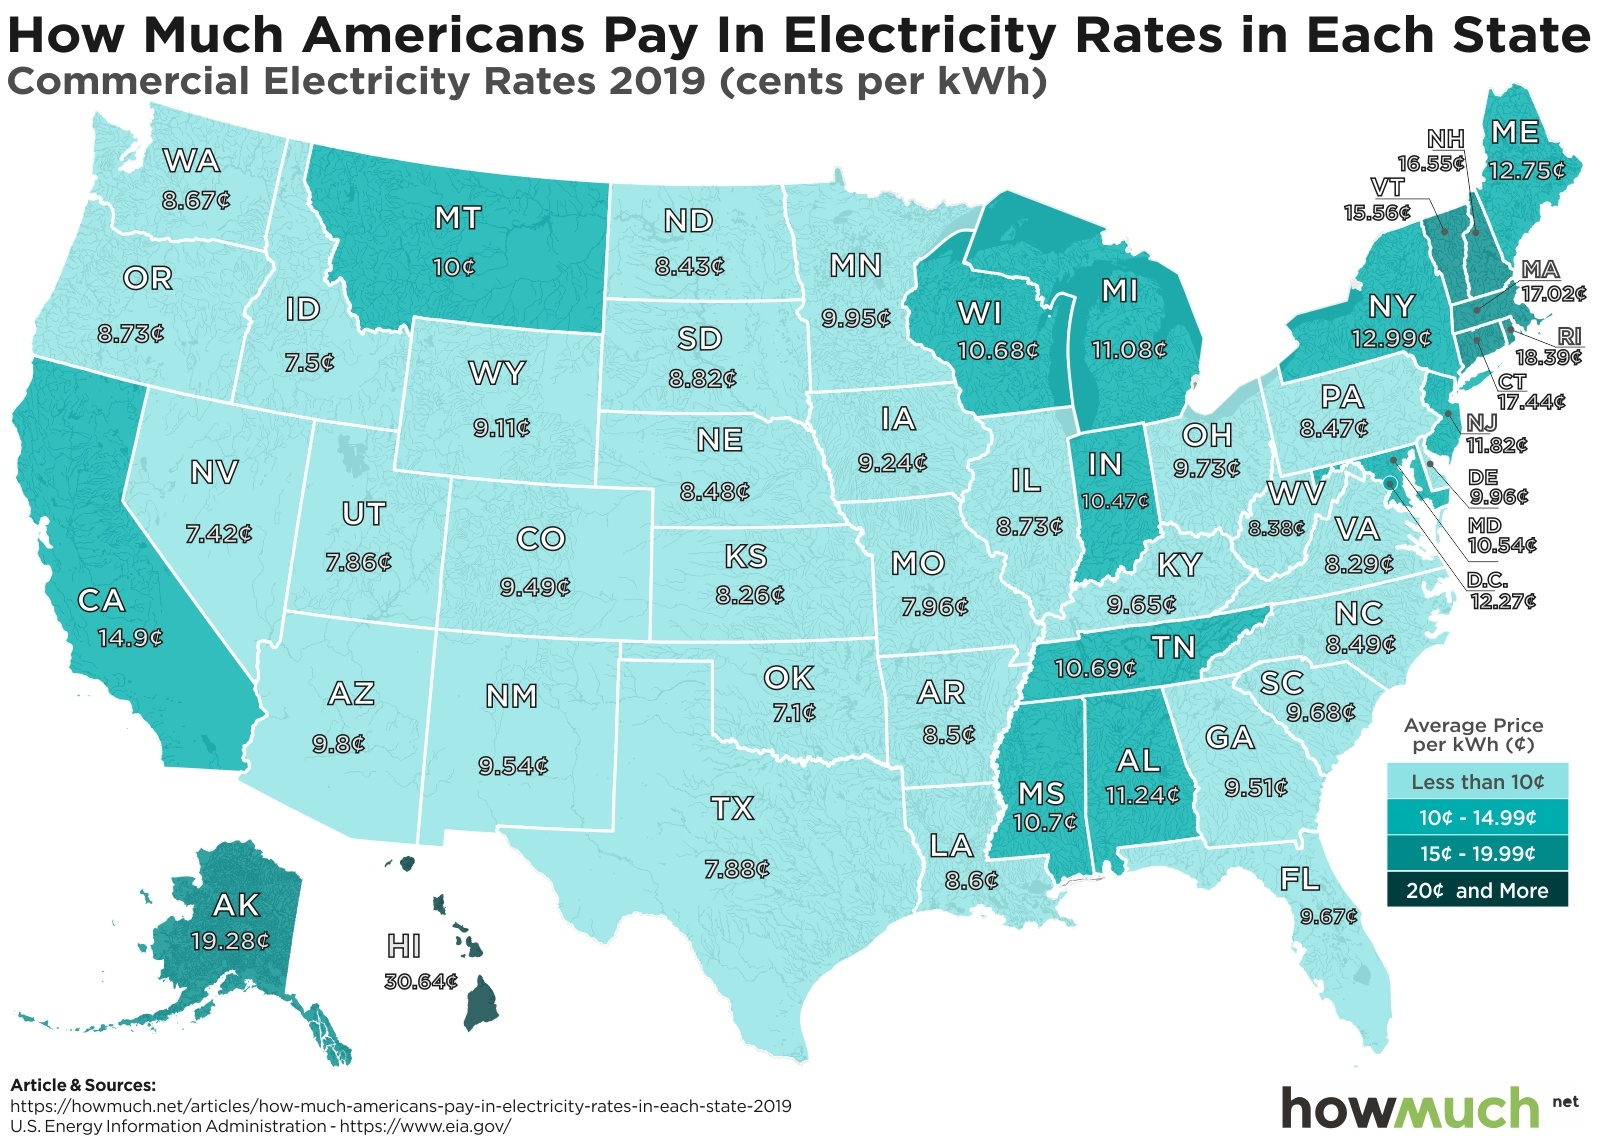 Commercial Electricity Rates by State